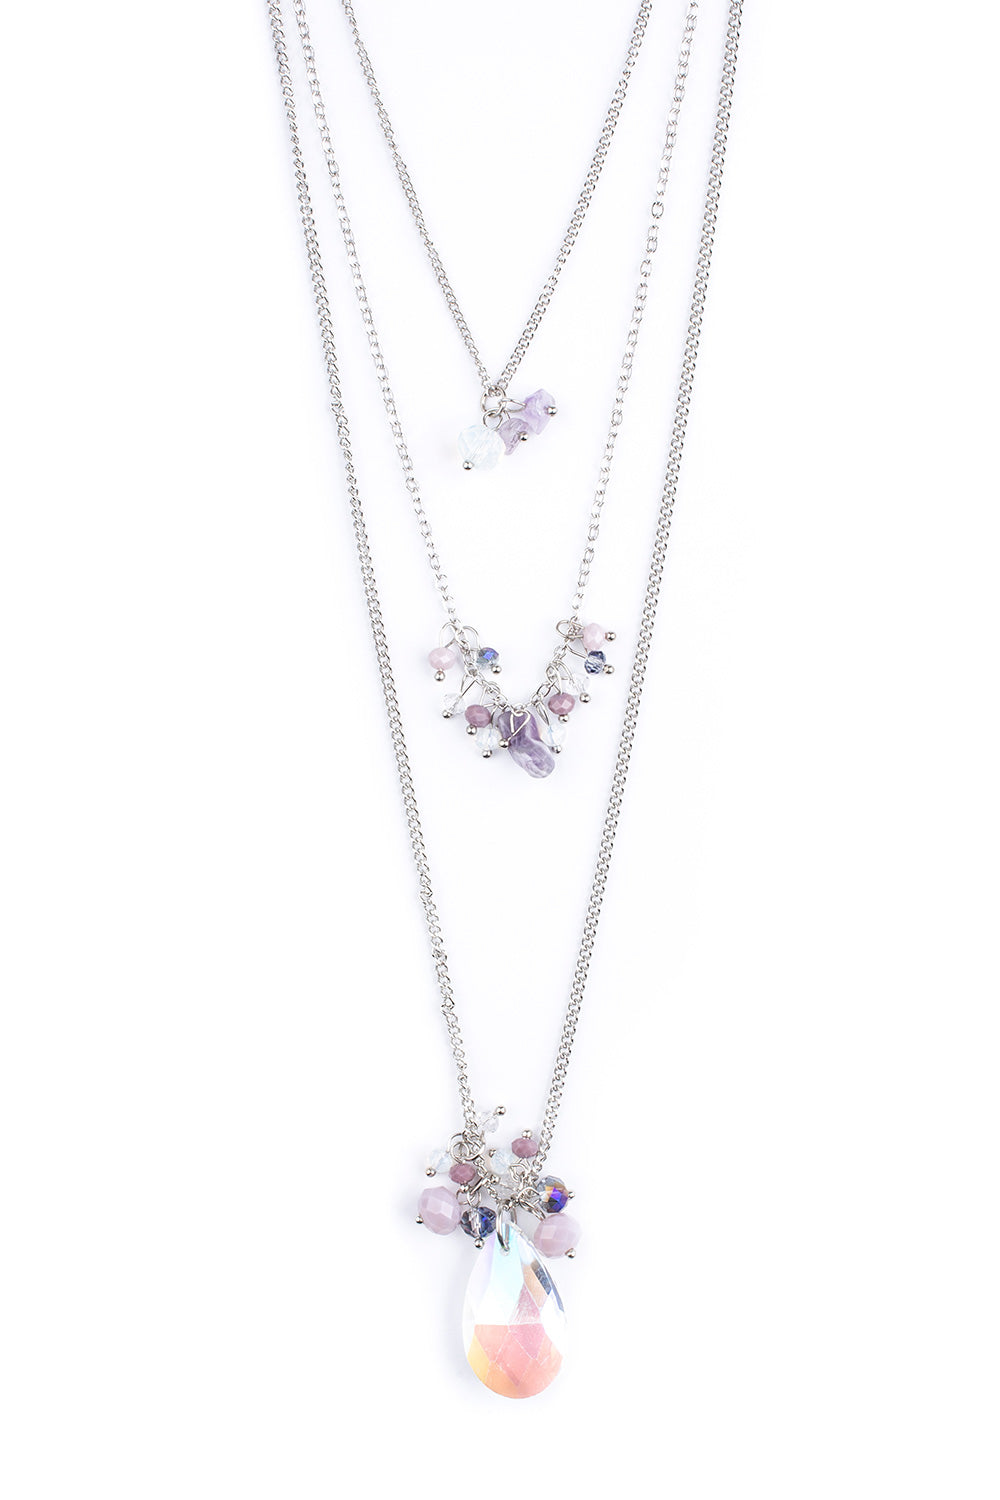 Type 2 Purple And Pristine Necklace